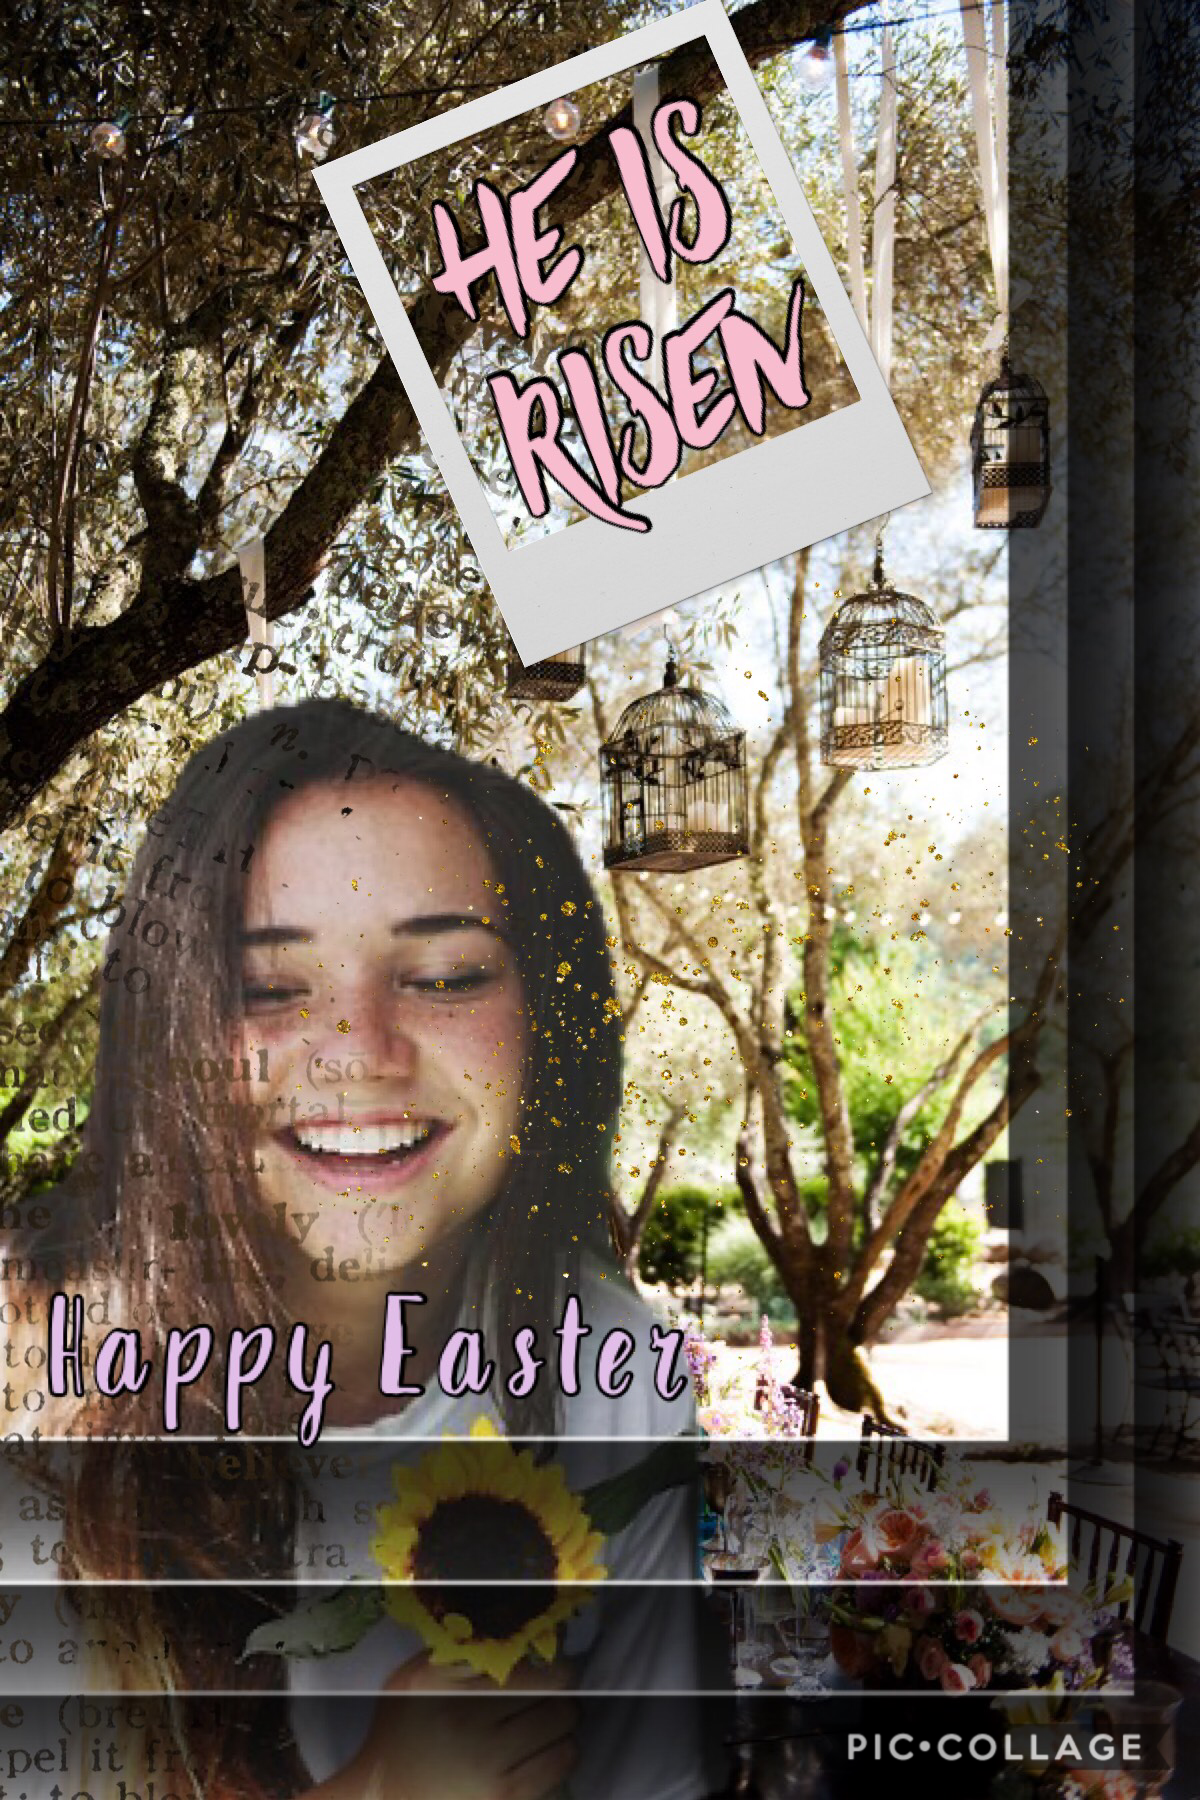 Happy Easter don't forget about what it's about!